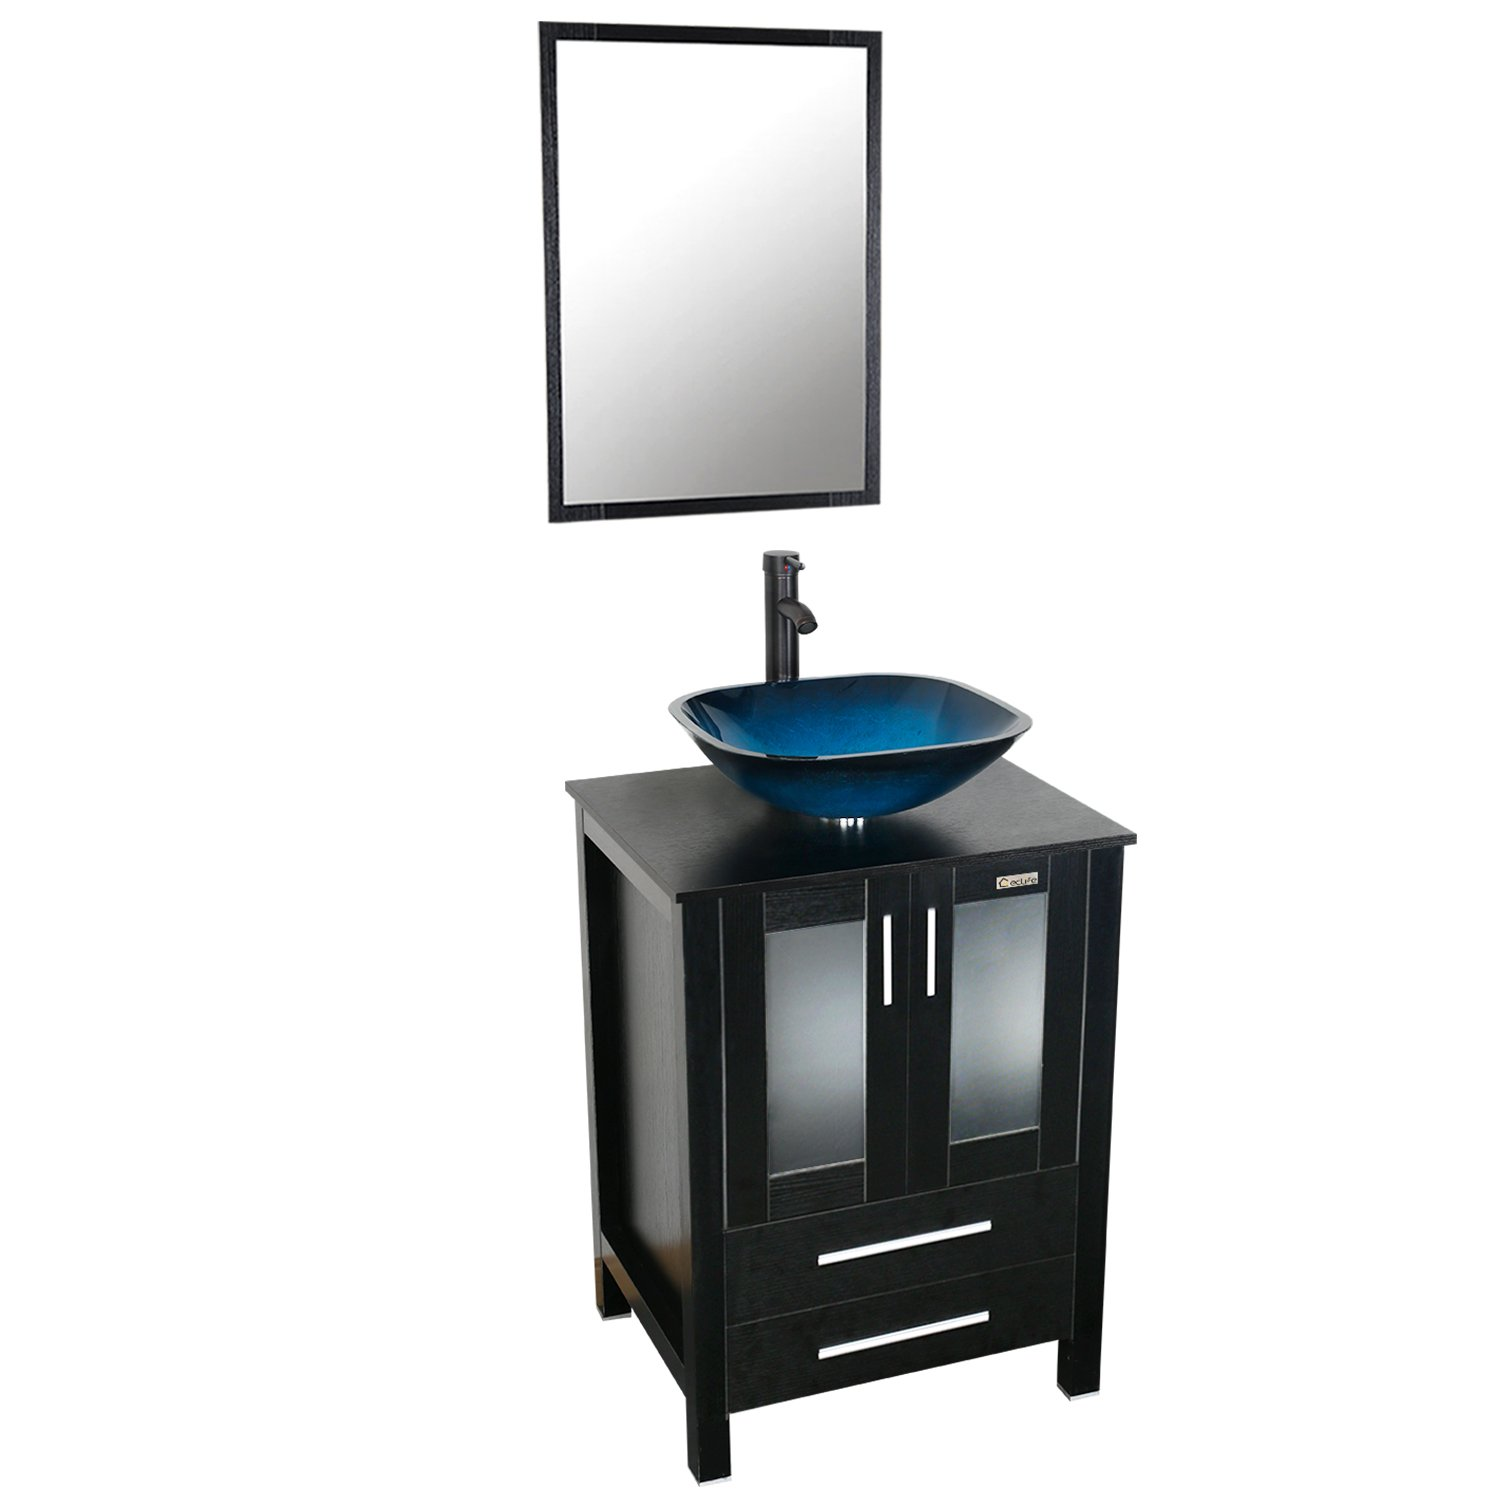 Eclife 24'' Modern Bathroom Vanity And Sink Combo Stand Cabinet and Square Blue Glass Vessel Sink and 1.5 GPM Bathroom Brass Faucet and Brass Pop Up Drain & Mounting Ring A4B2 by Eclife